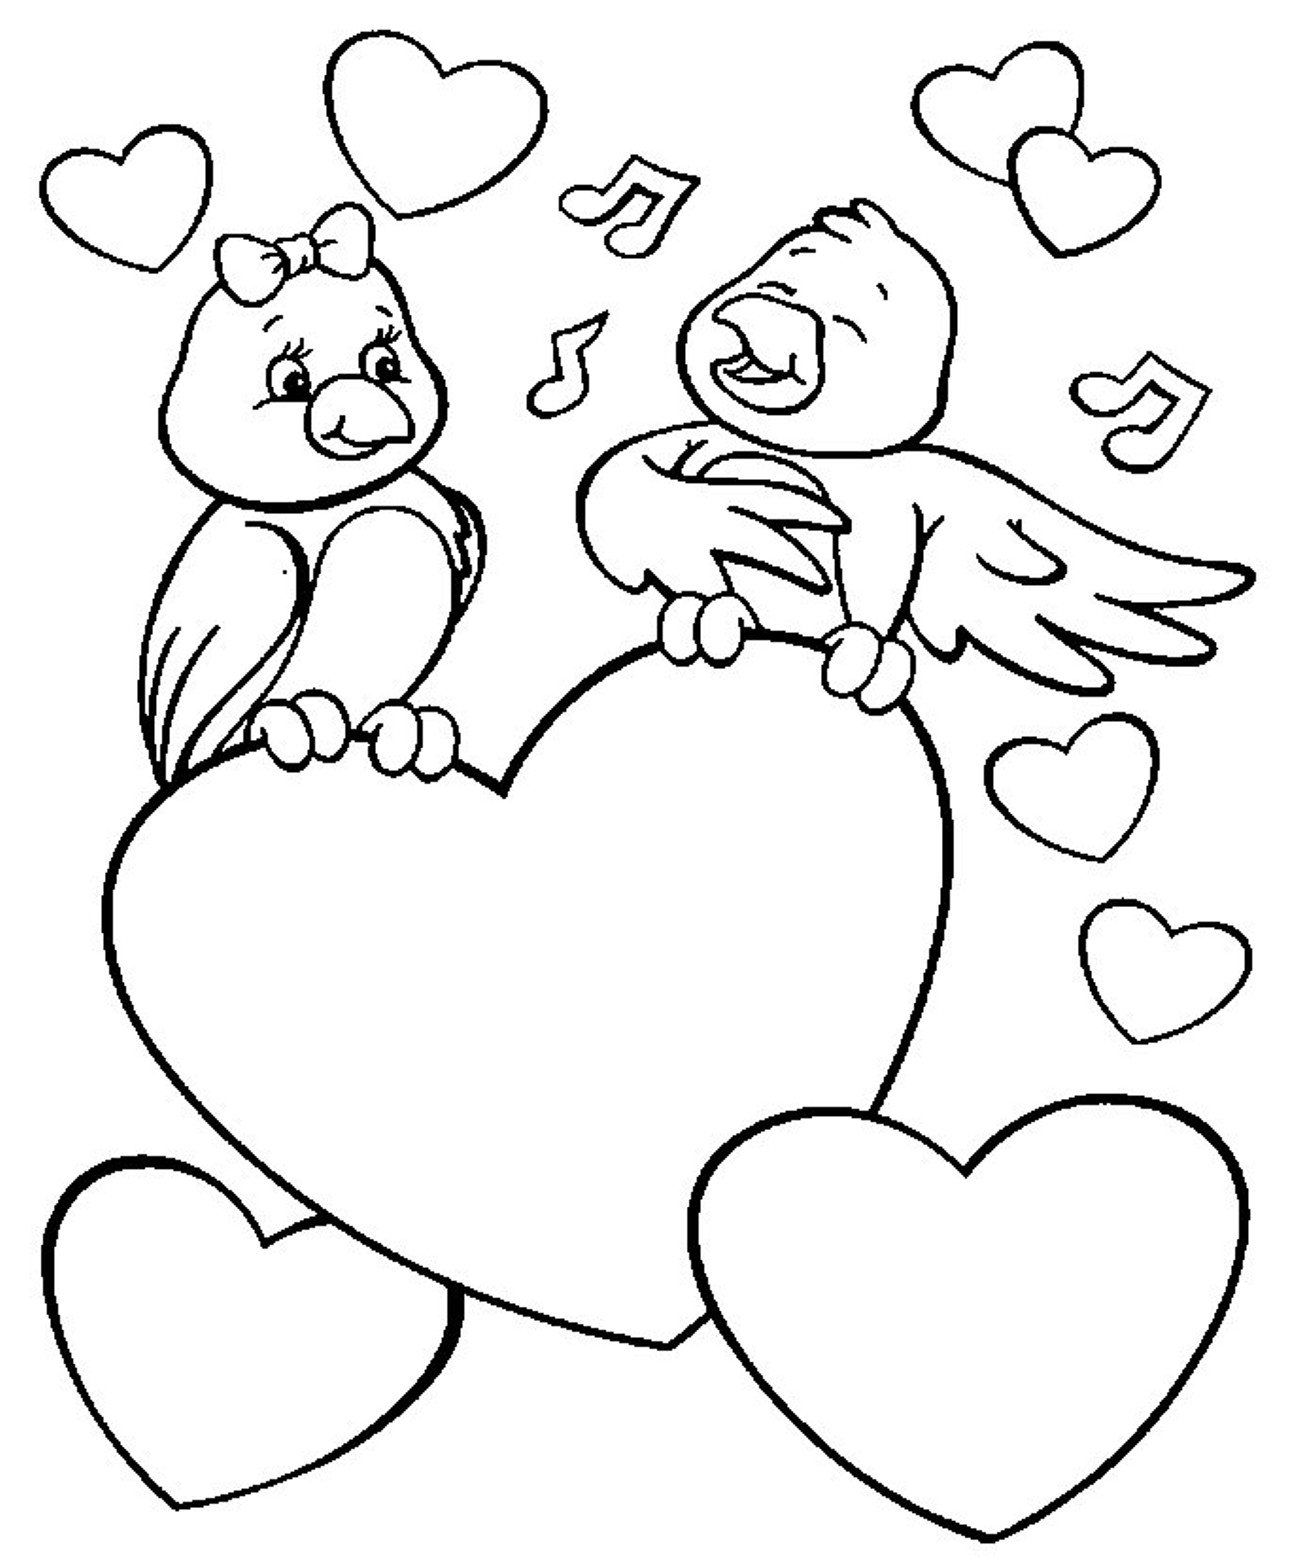 love birds coloring pages love bird coloring pages at getdrawingscom free for birds coloring love pages